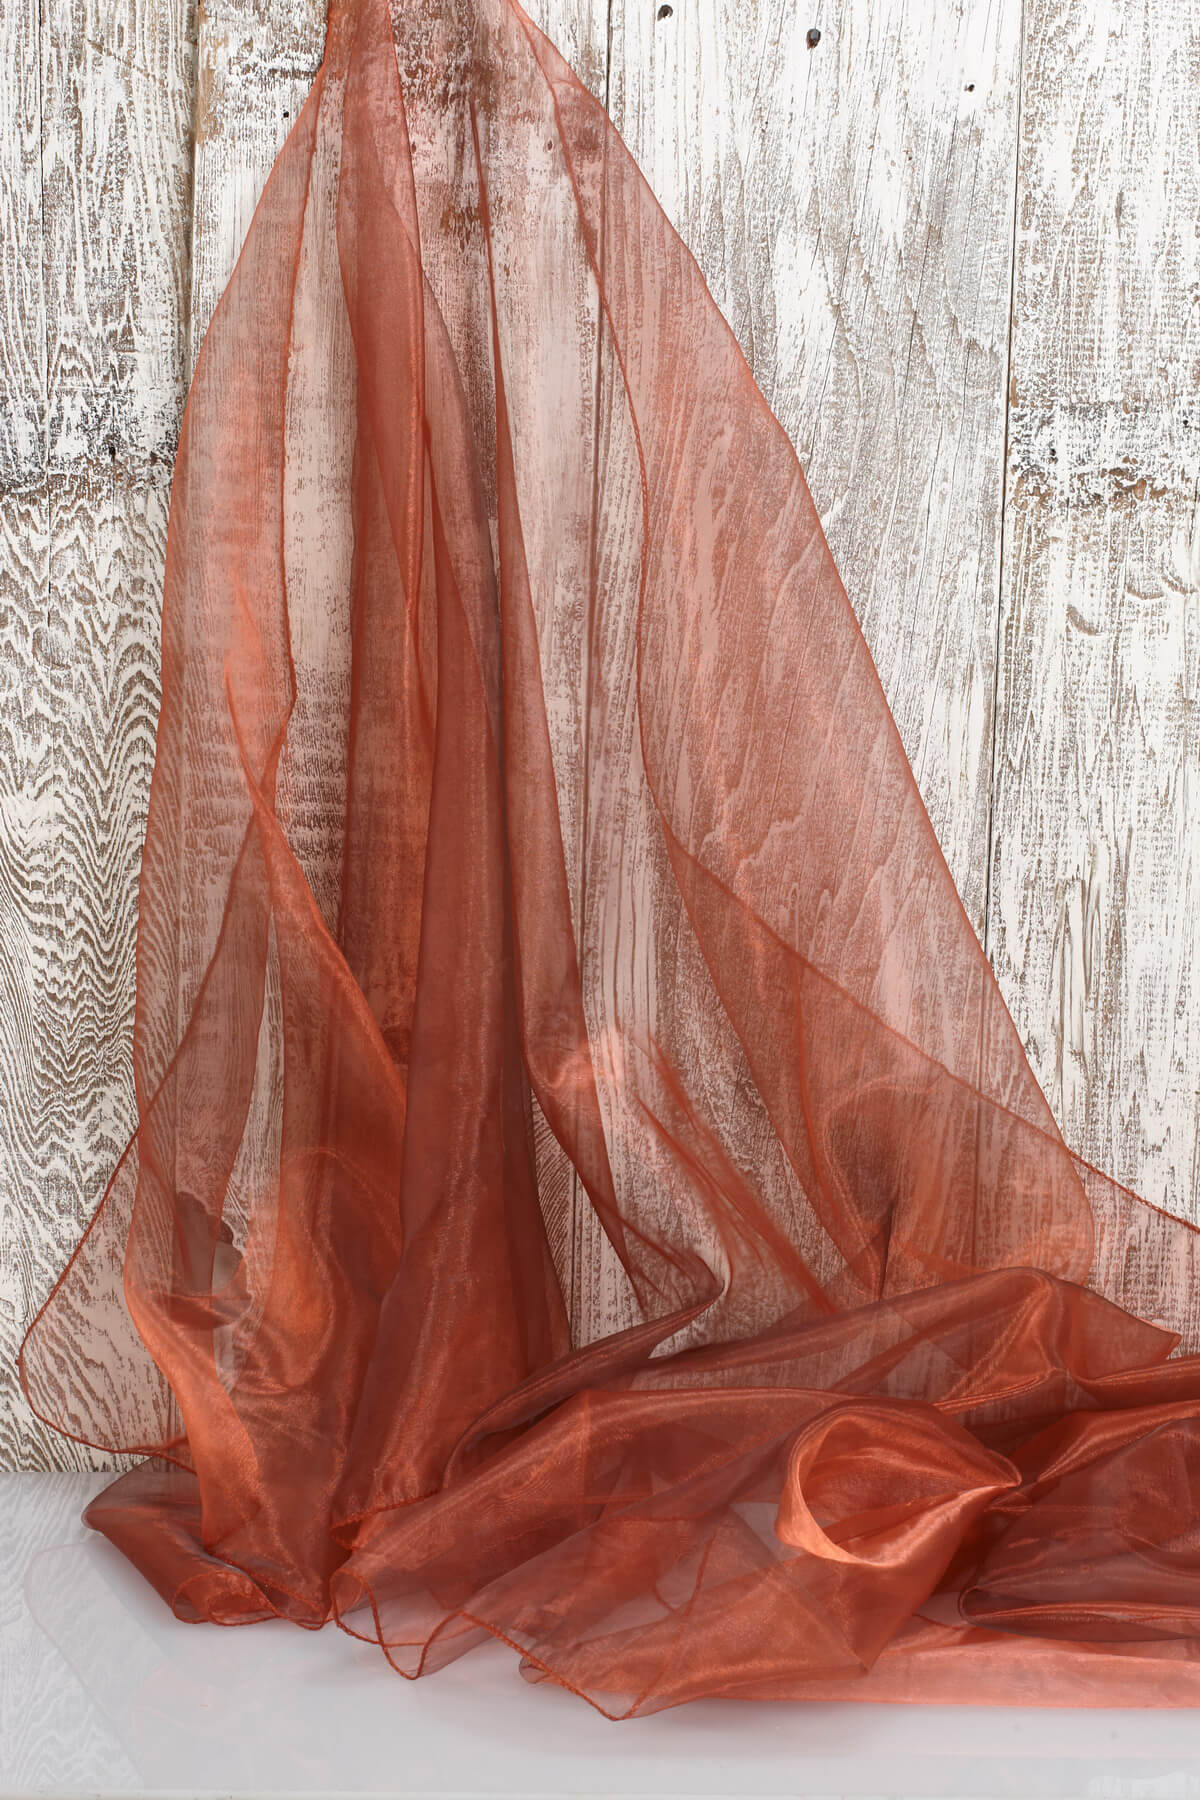 Organza Fabric Copper & Black 9ft